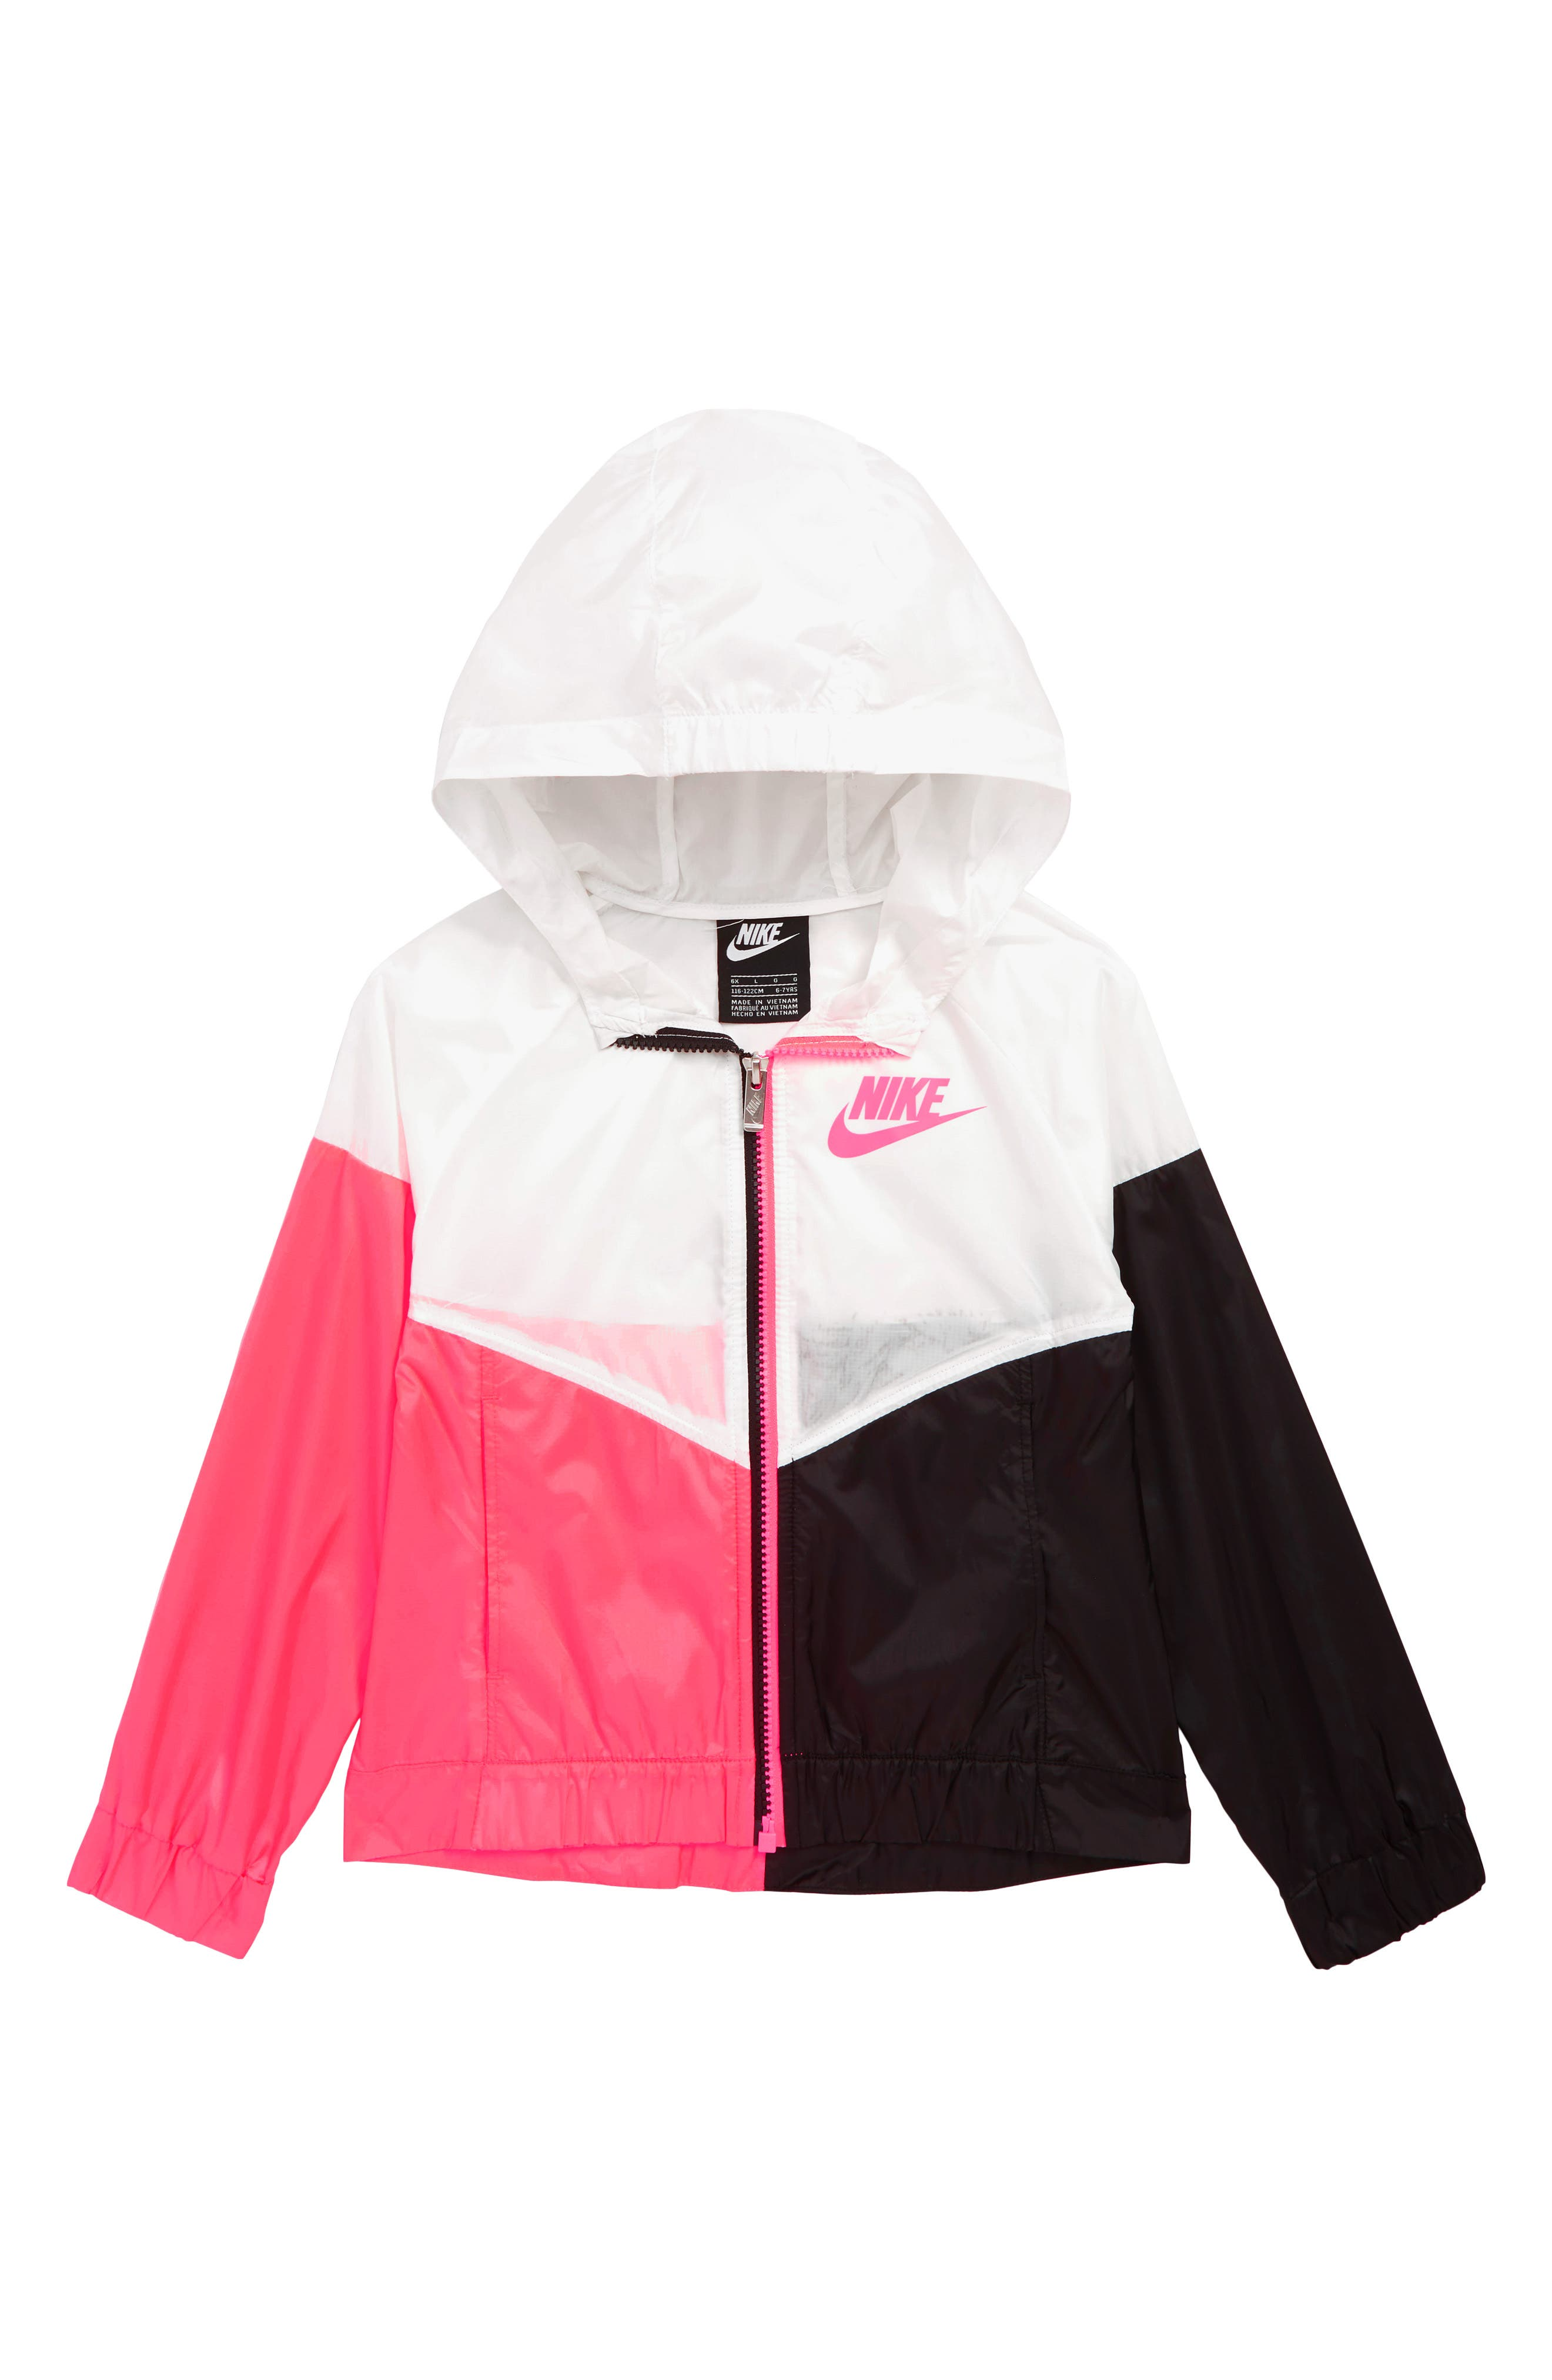 NIKE, Windrunner Water Repellent Hooded Jacket, Main thumbnail 1, color, RACER PINK